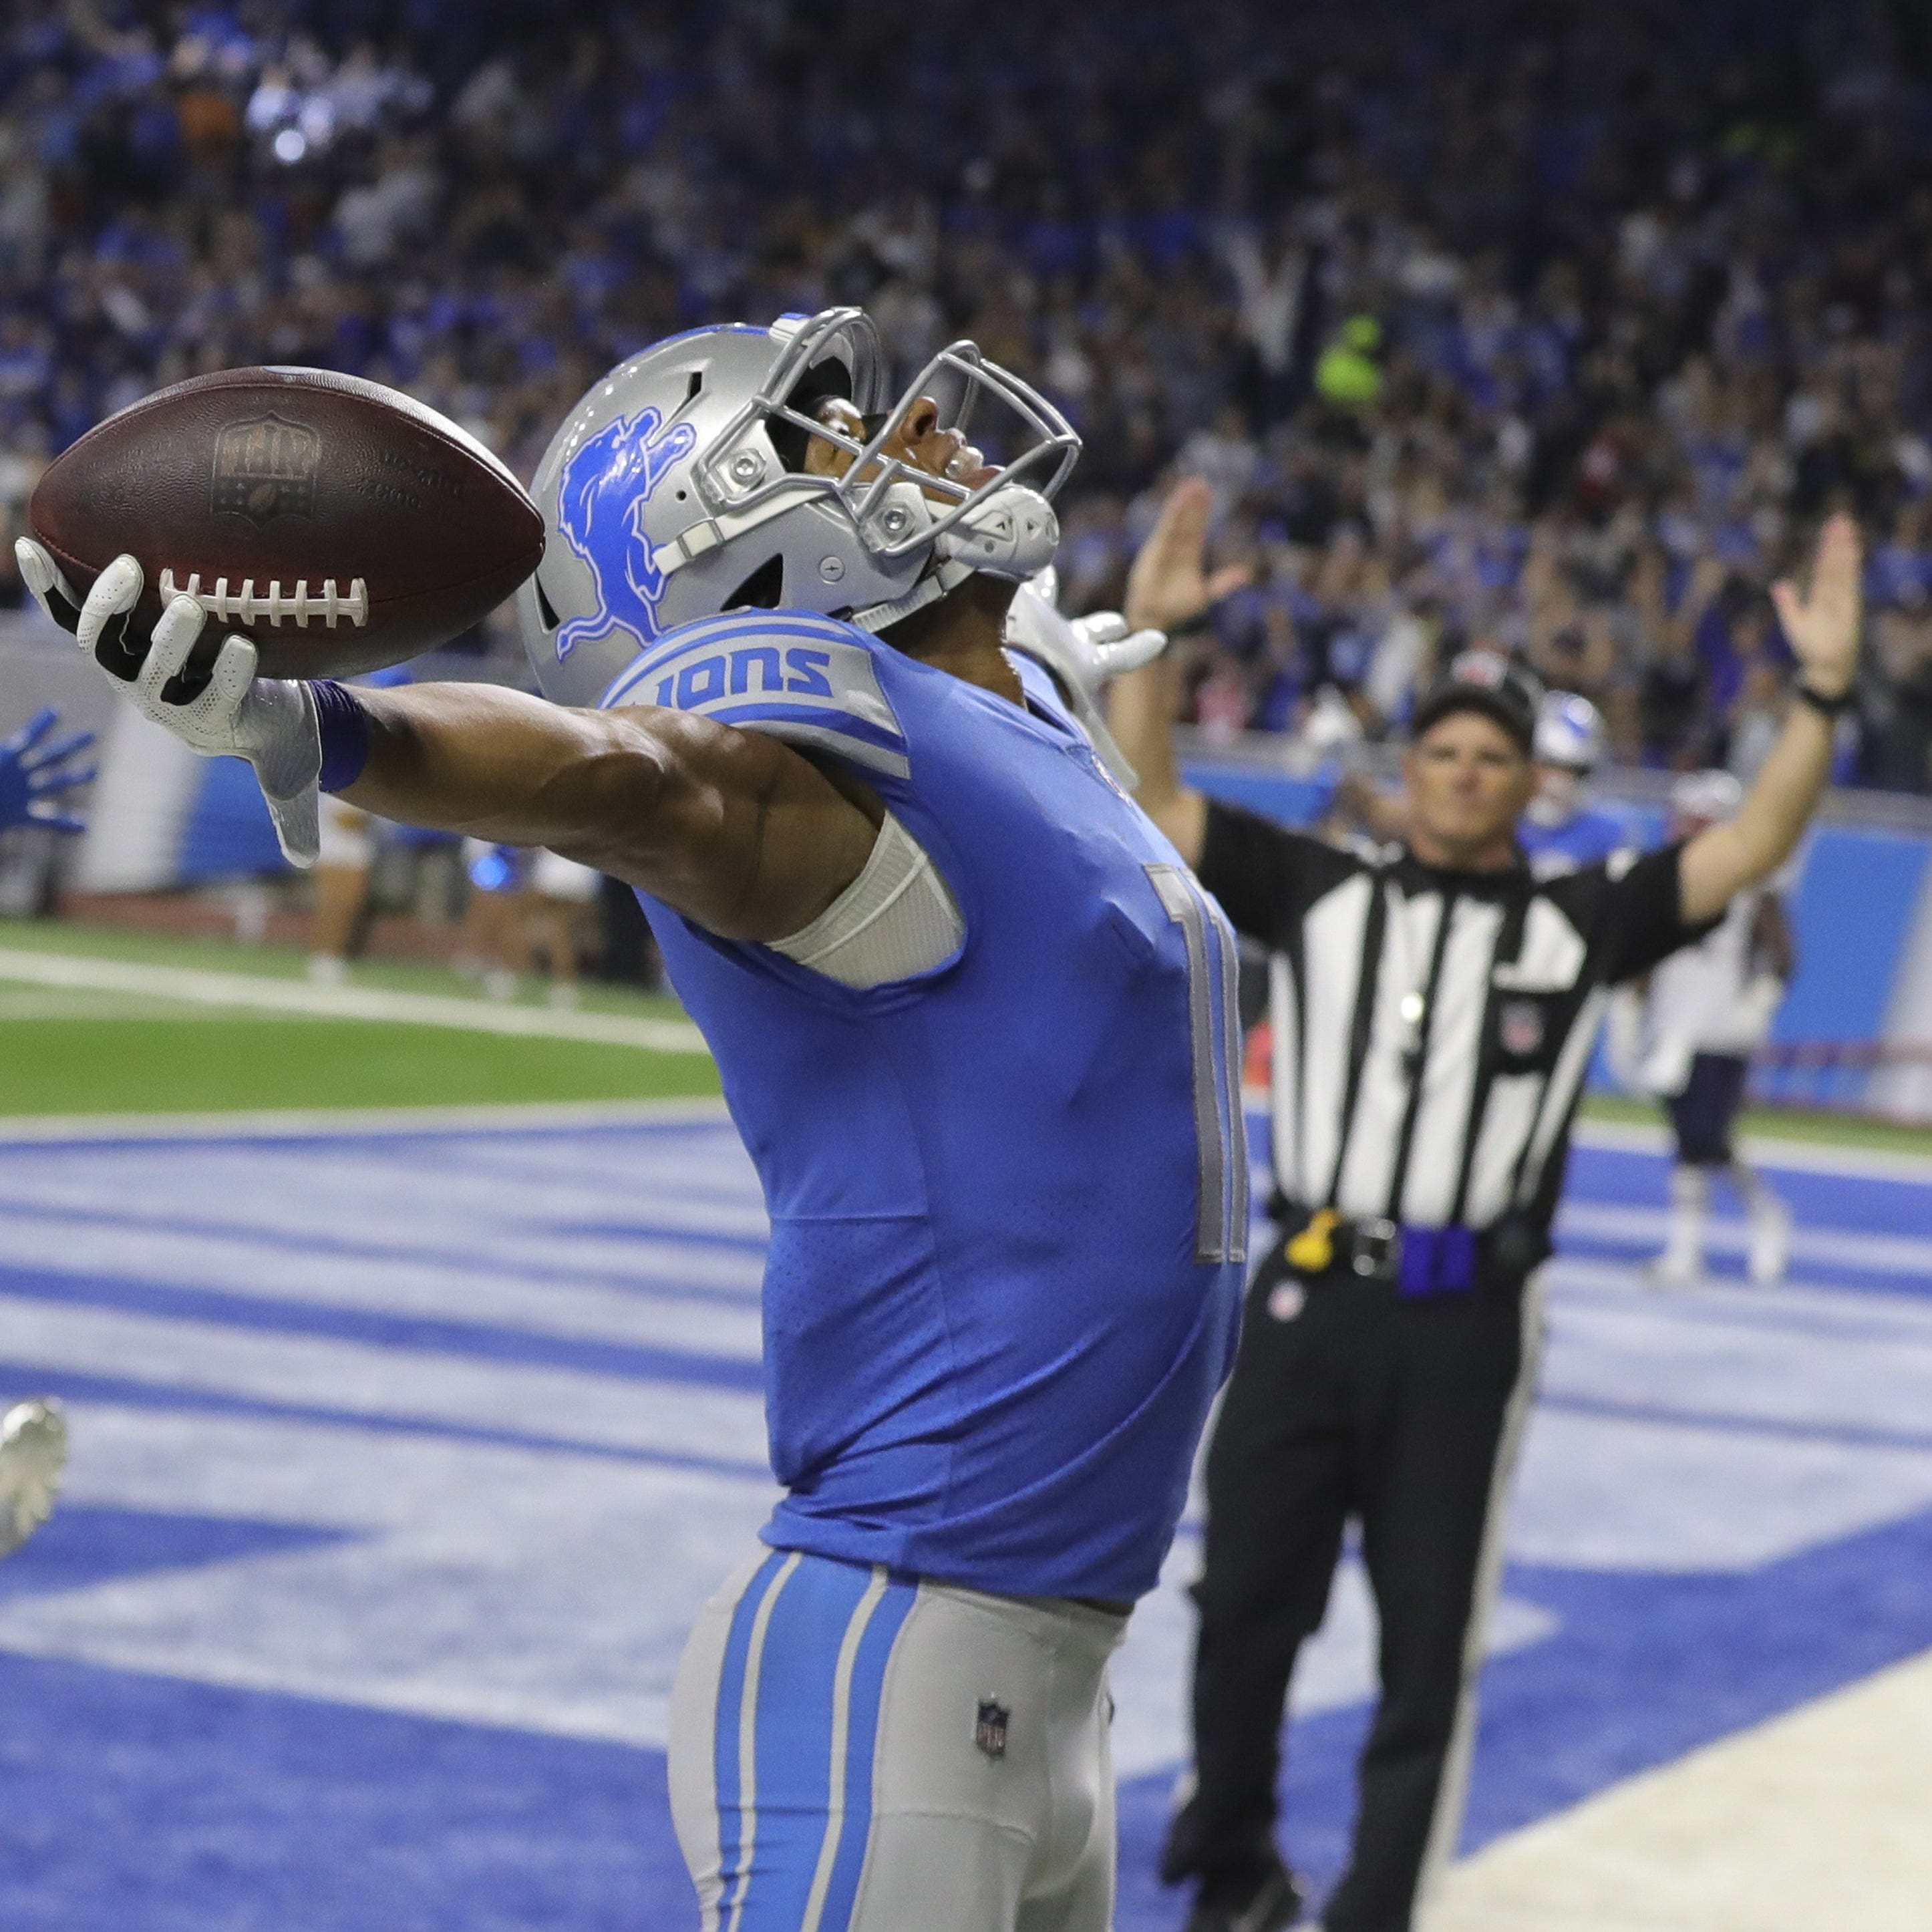 Yes, Detroit Lions will win next title. But don't stress in the meantime